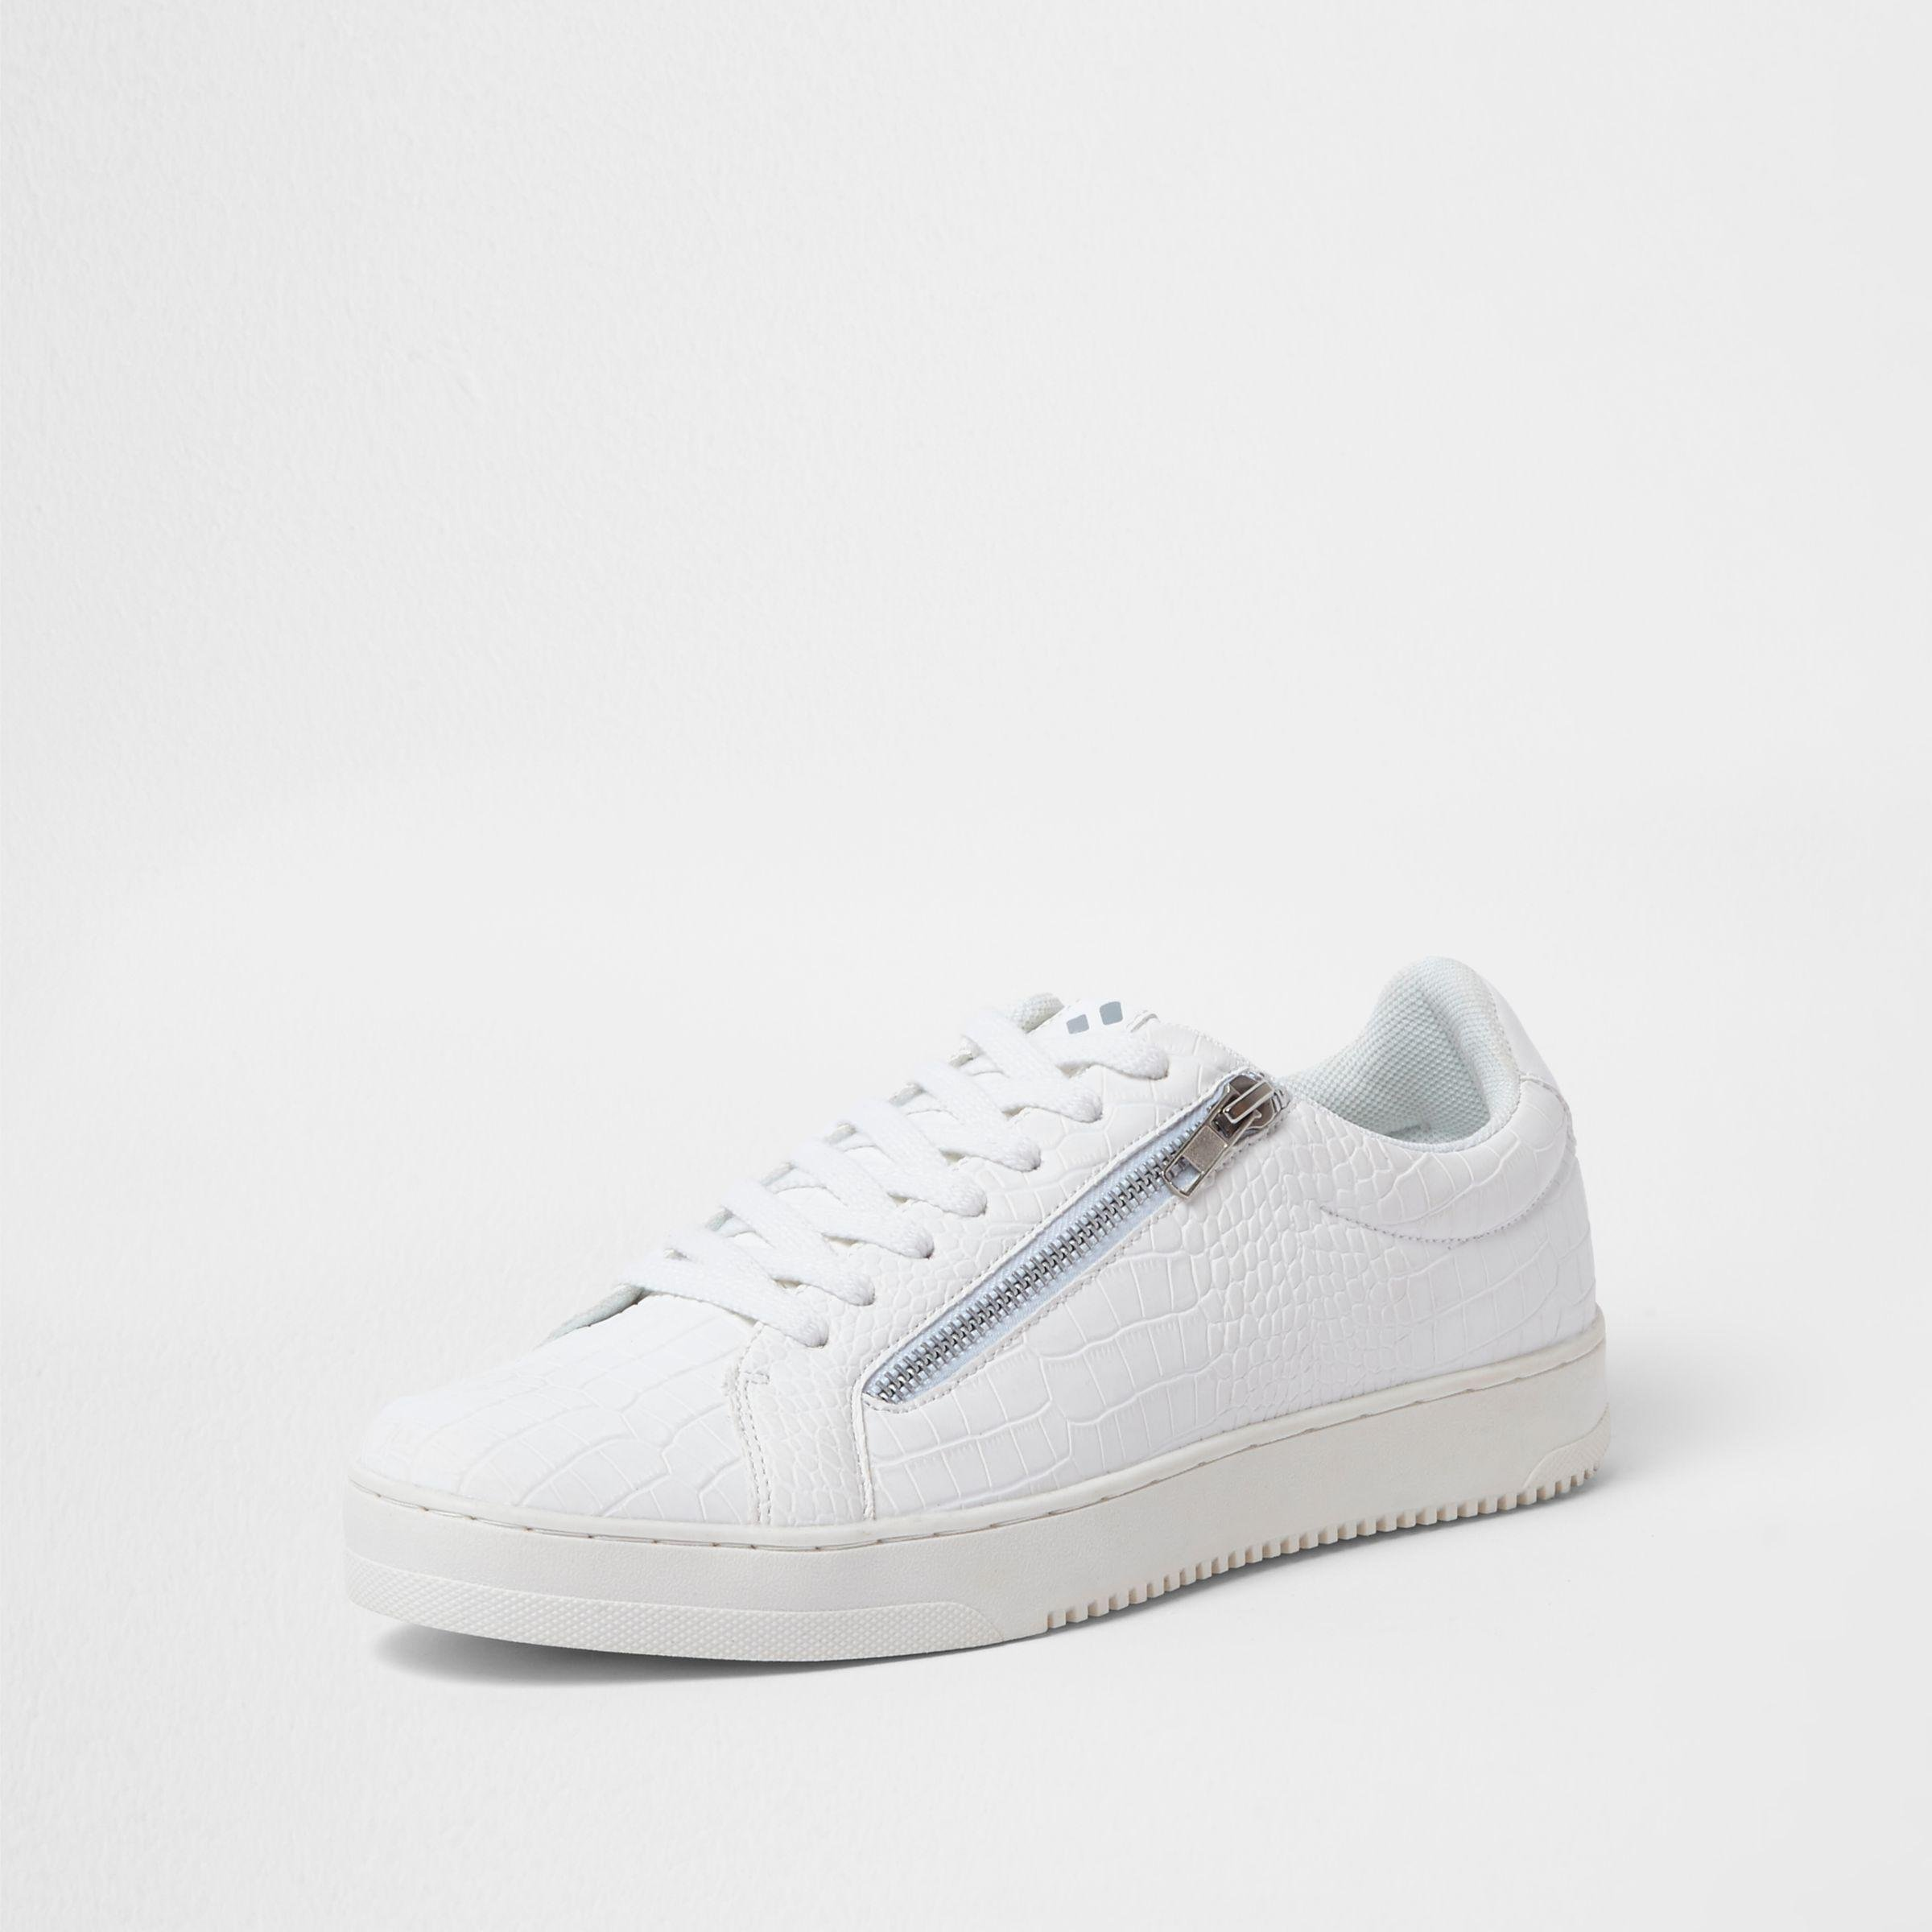 River Island trainers with zip detail in white croc discount amazing price cheap discount authentic 1XkUYLPN1